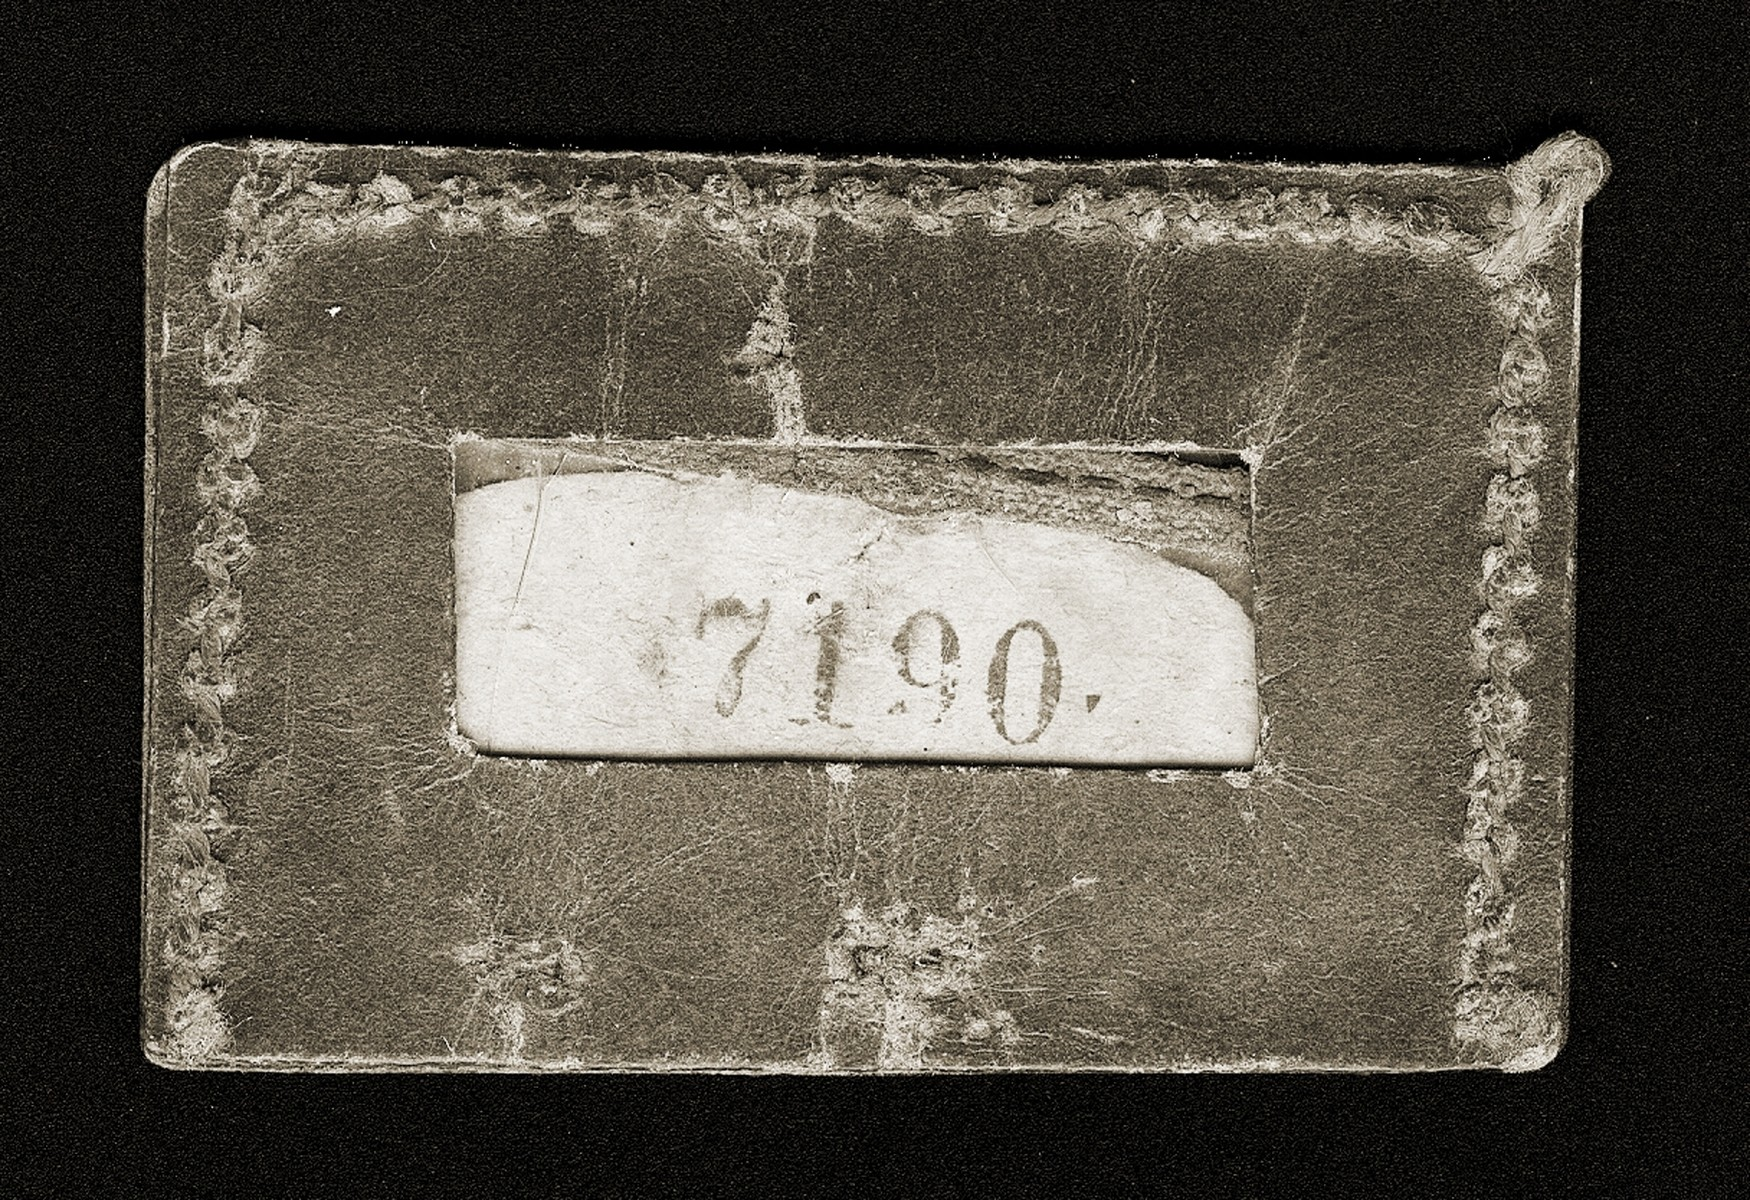 An identification tag issued to Gina Tabaczynska, when she was detained with other employees of the Schultz & Co. factory in the Warsaw ghetto in the summer of 1942.  Those who held these numbers were presumed to be exempt from deportation.